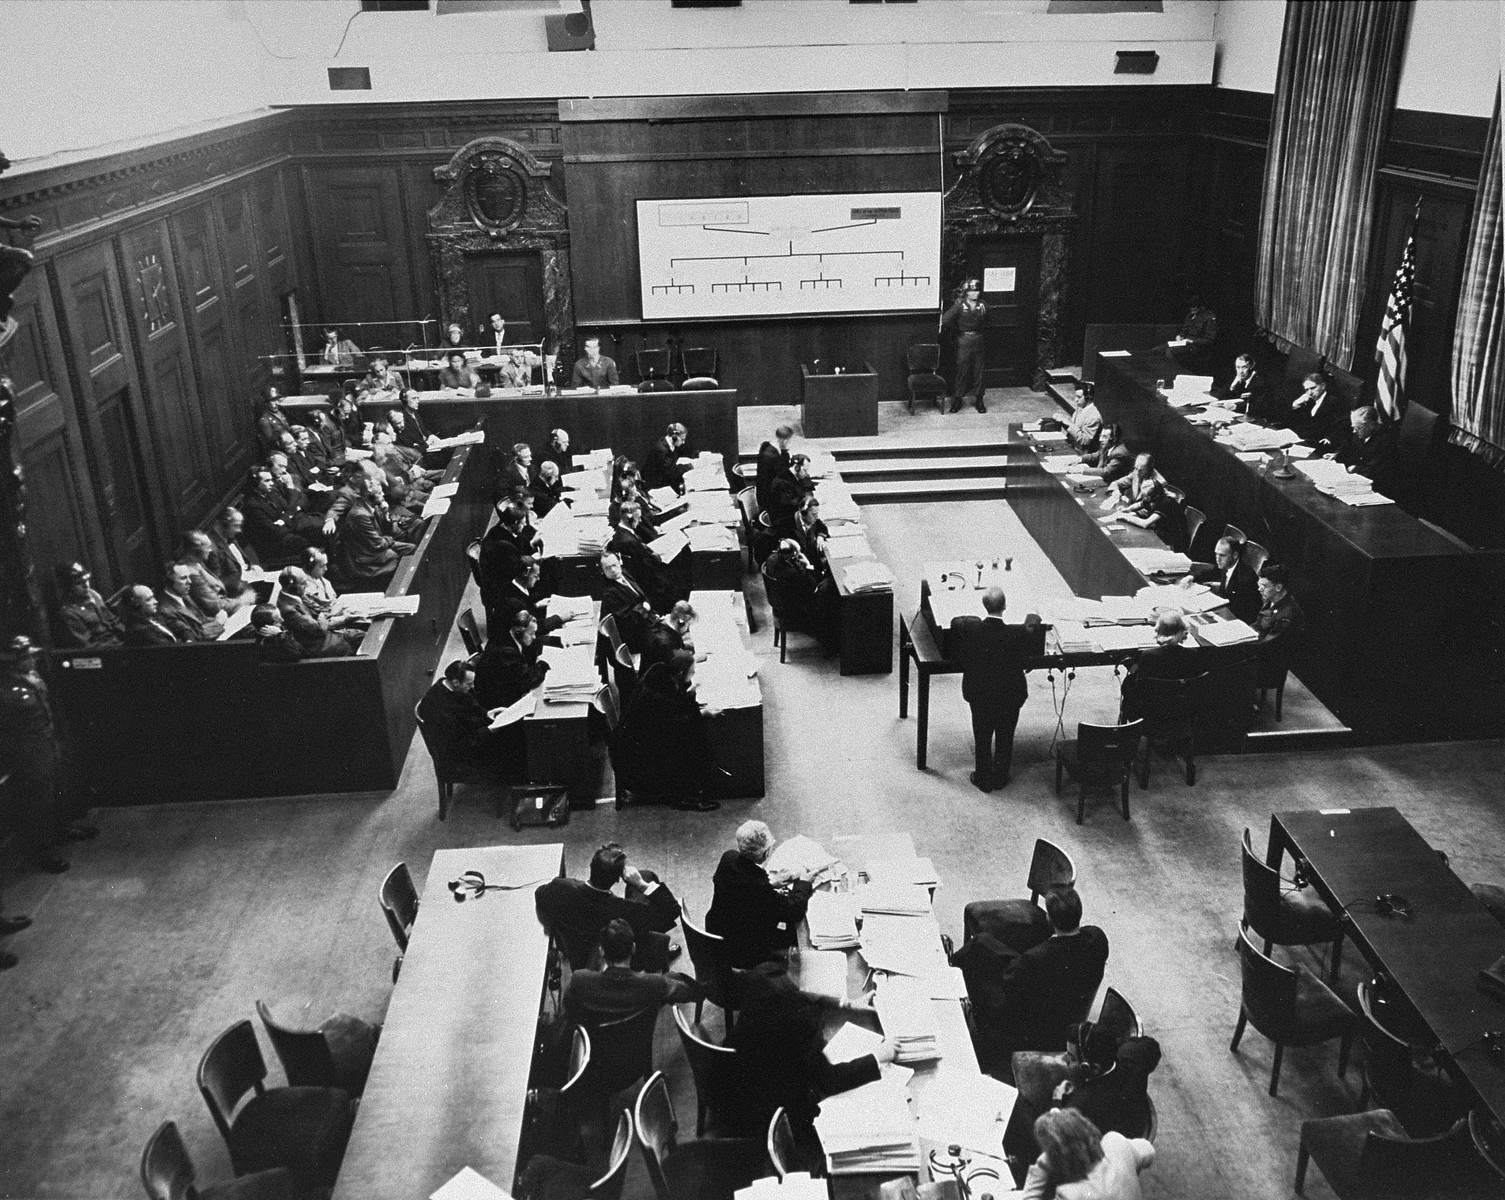 Chief prosecutor Benjamin Ferencz (standing center) presents evidence at the Einsatzgruppen Trial.